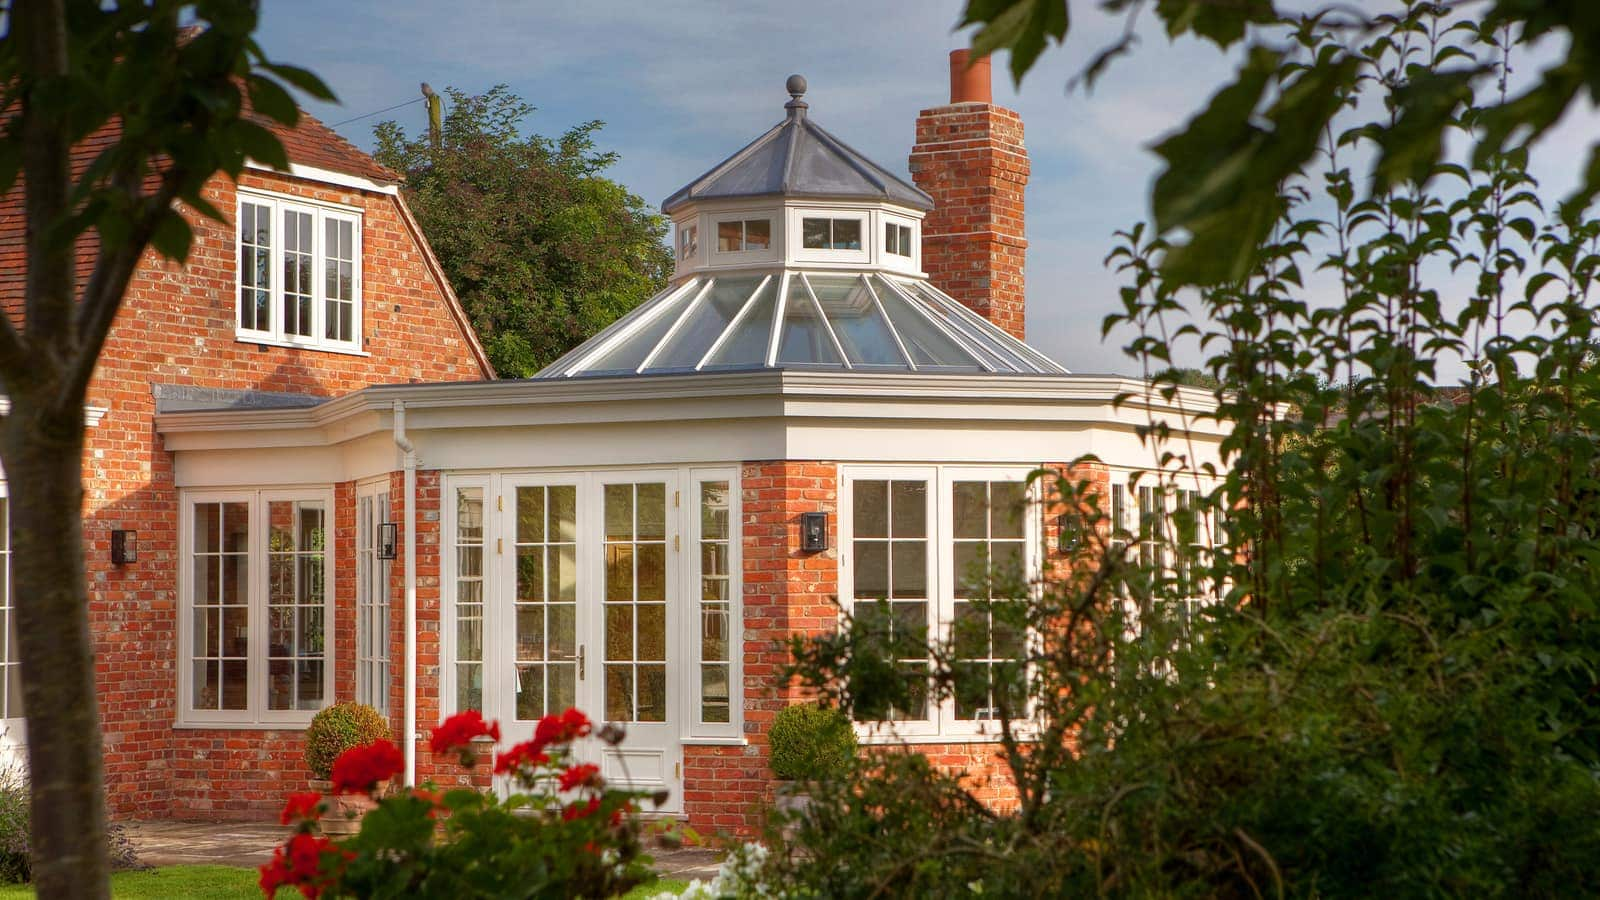 What does an orangery cost?